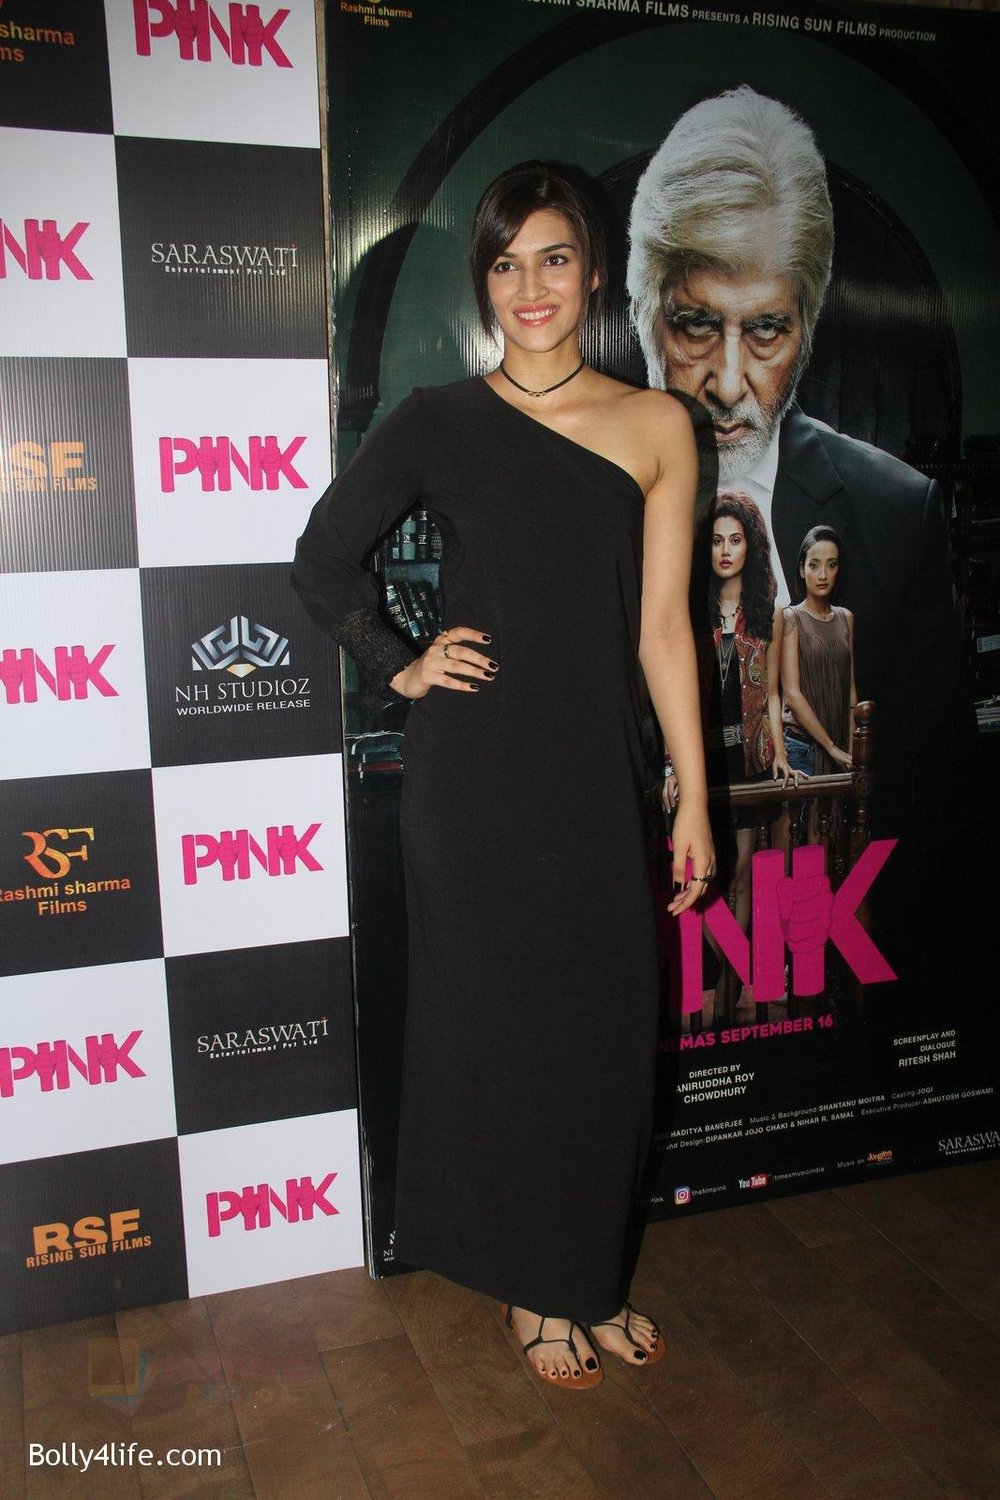 Kriti-Sanon-at-Pink-Screening-in-Lightbox-on-12th-Sept-2016-99.jpg